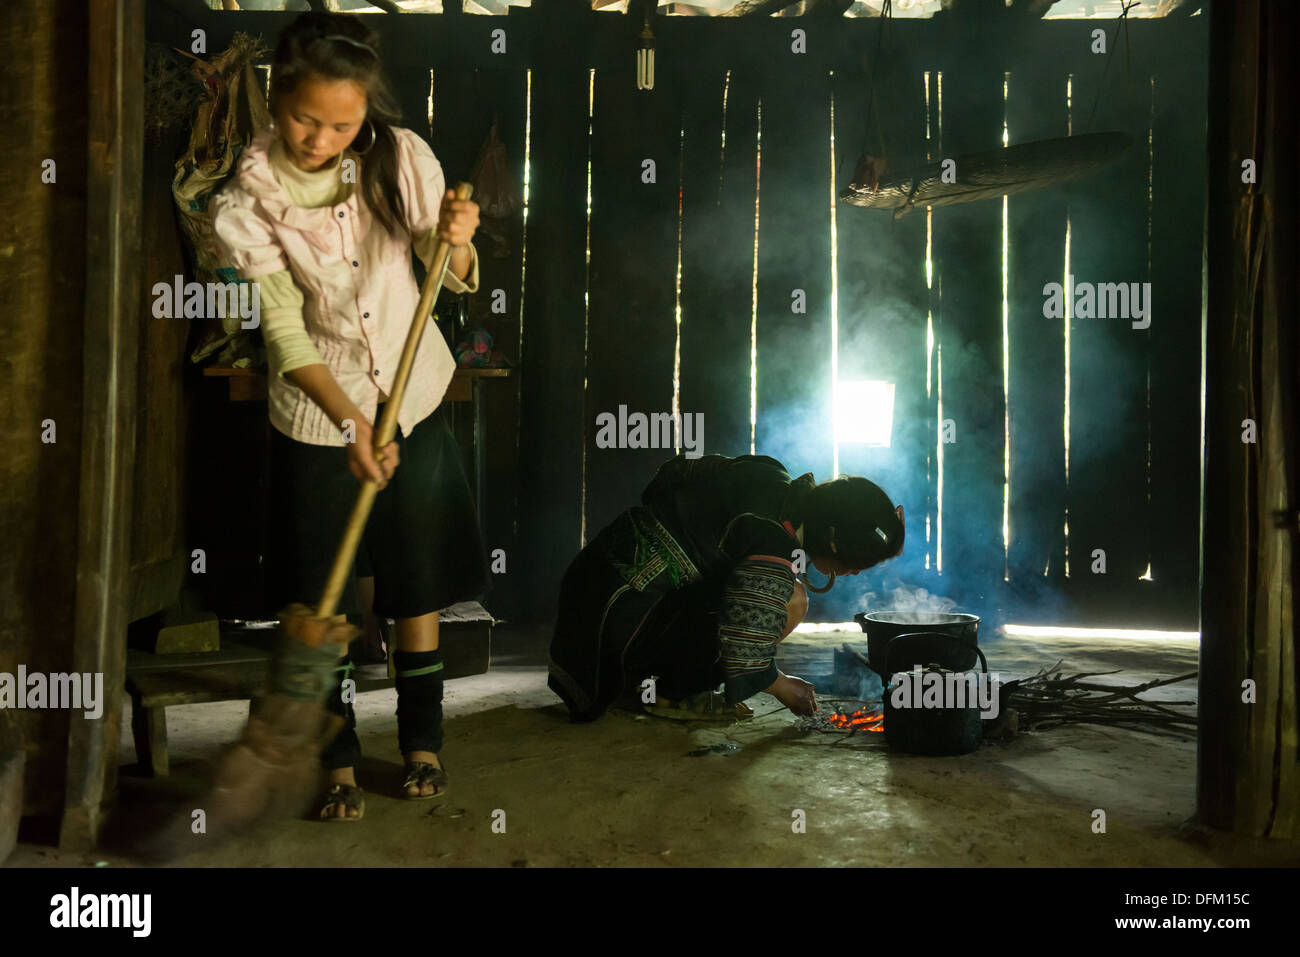 cleaning the barangay To make your barangay clean and peaceful make sure that all people have a good manner they know what is the best for there barangay.